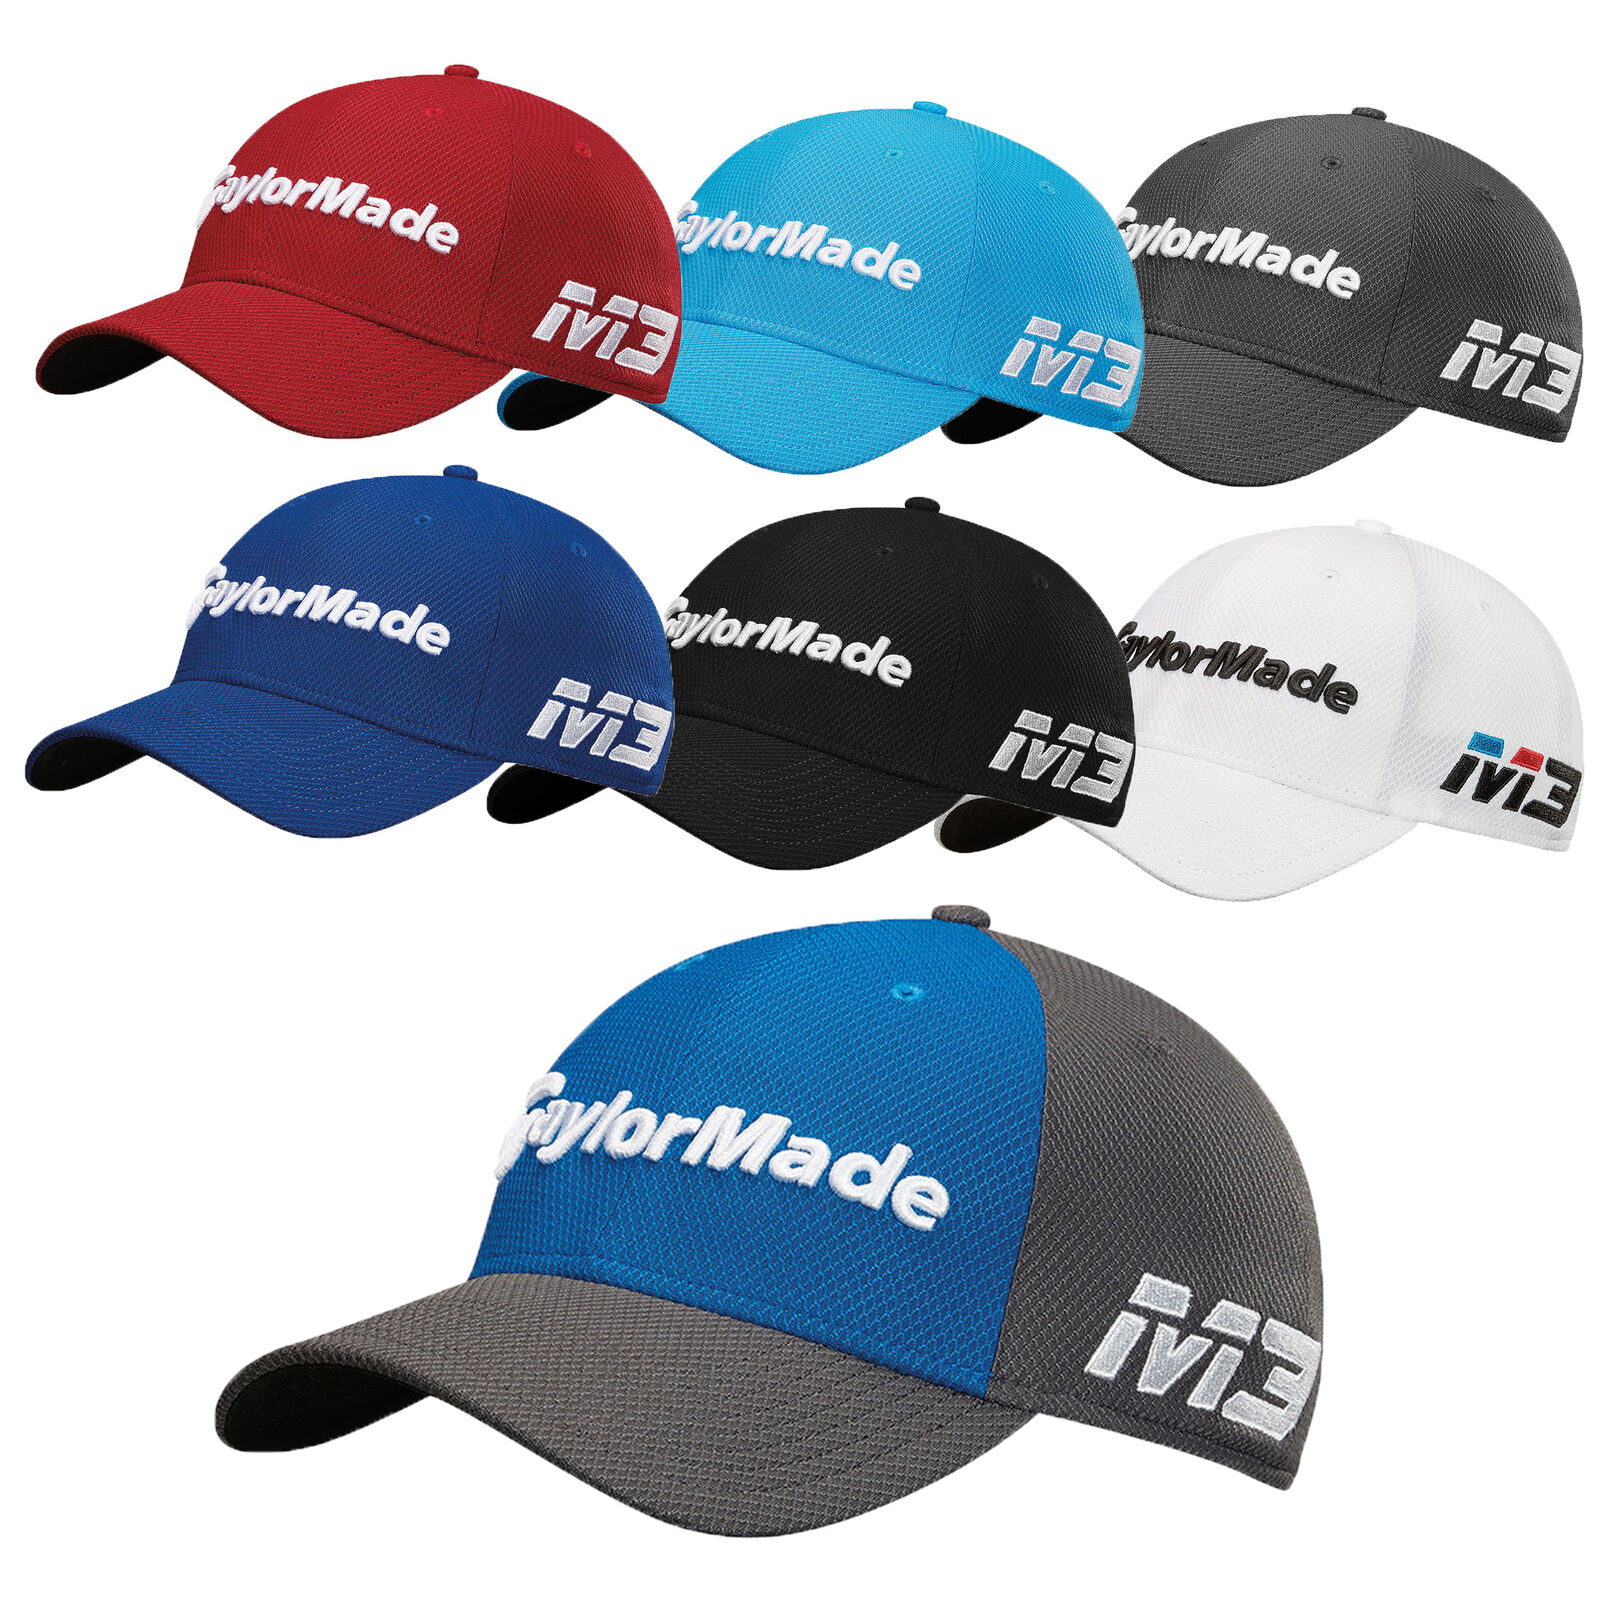 849ab60c40a TaylorMade Golf 2018 New Era Tour 39Thirty Fitted Hat Cap - Pick Size    Color! 아이템 넘버  273117857628.